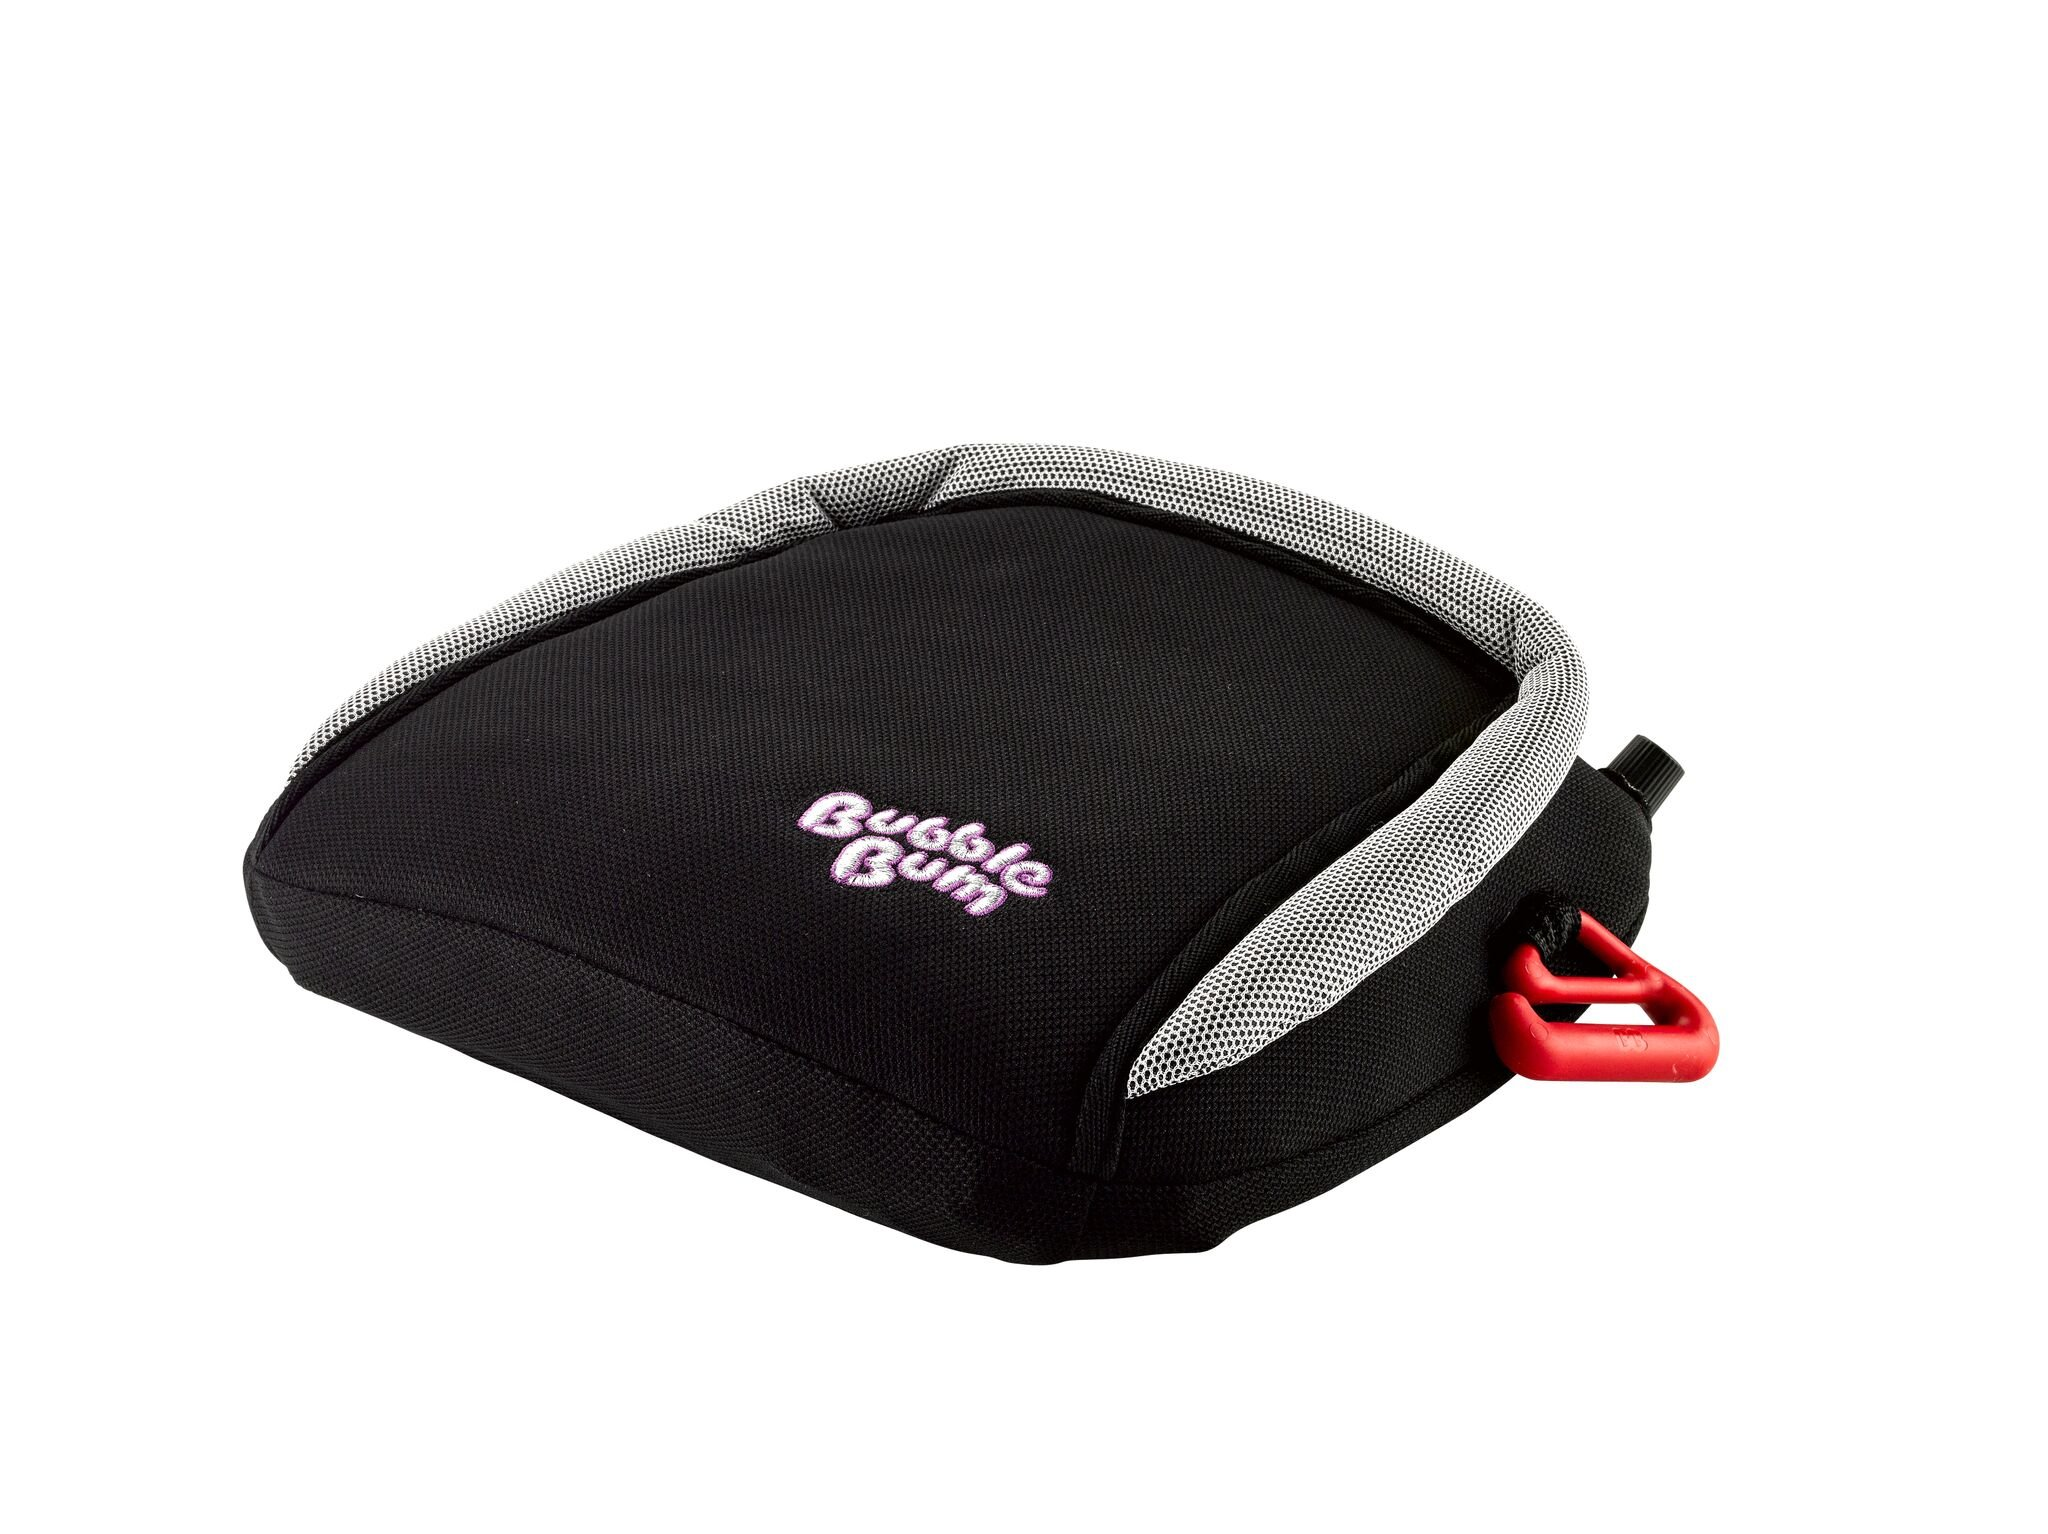 Bubblebum Inflatable Car Booster Seat, Group 2/3, Twin Black Bundle Bubblebum Pack of 2, Award Winning BubbleBum Car Booster Seats The Inflatable, portable & safe booster seat for children aged 4 - 11, 15 - 36kg (with the provision of a vehicle headrest) Approved to the EU Safety Standard R44.04 for both Groups 2 and 3 2